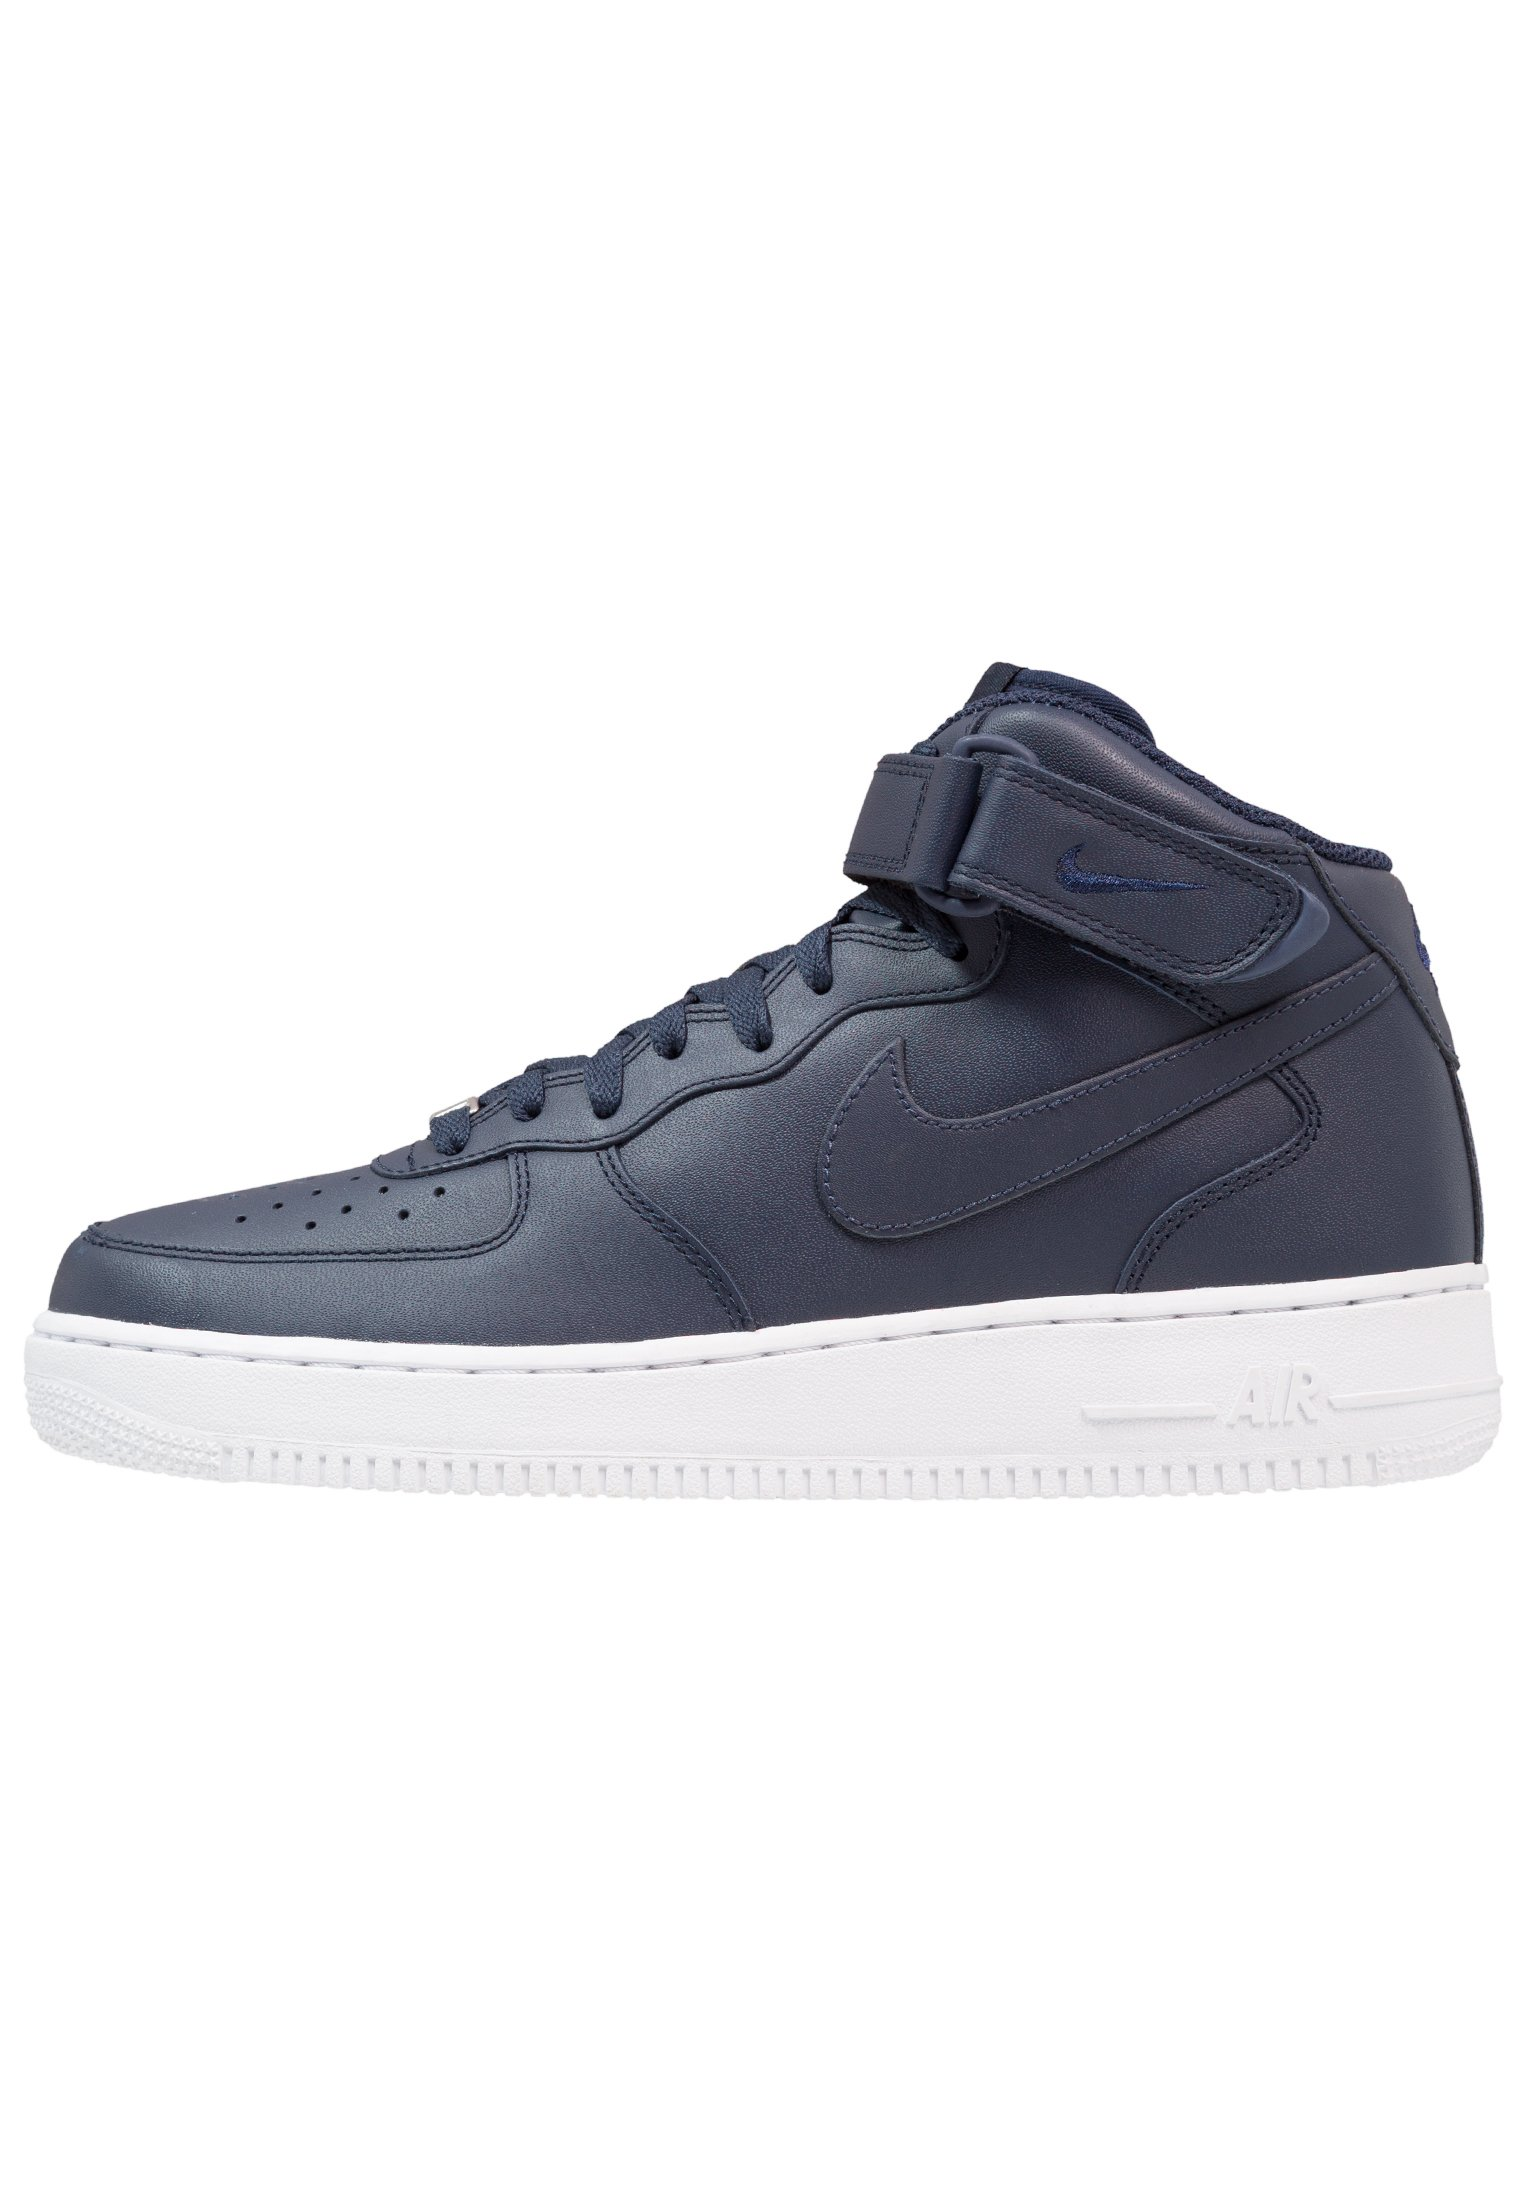 air force 1 mid uomo alte